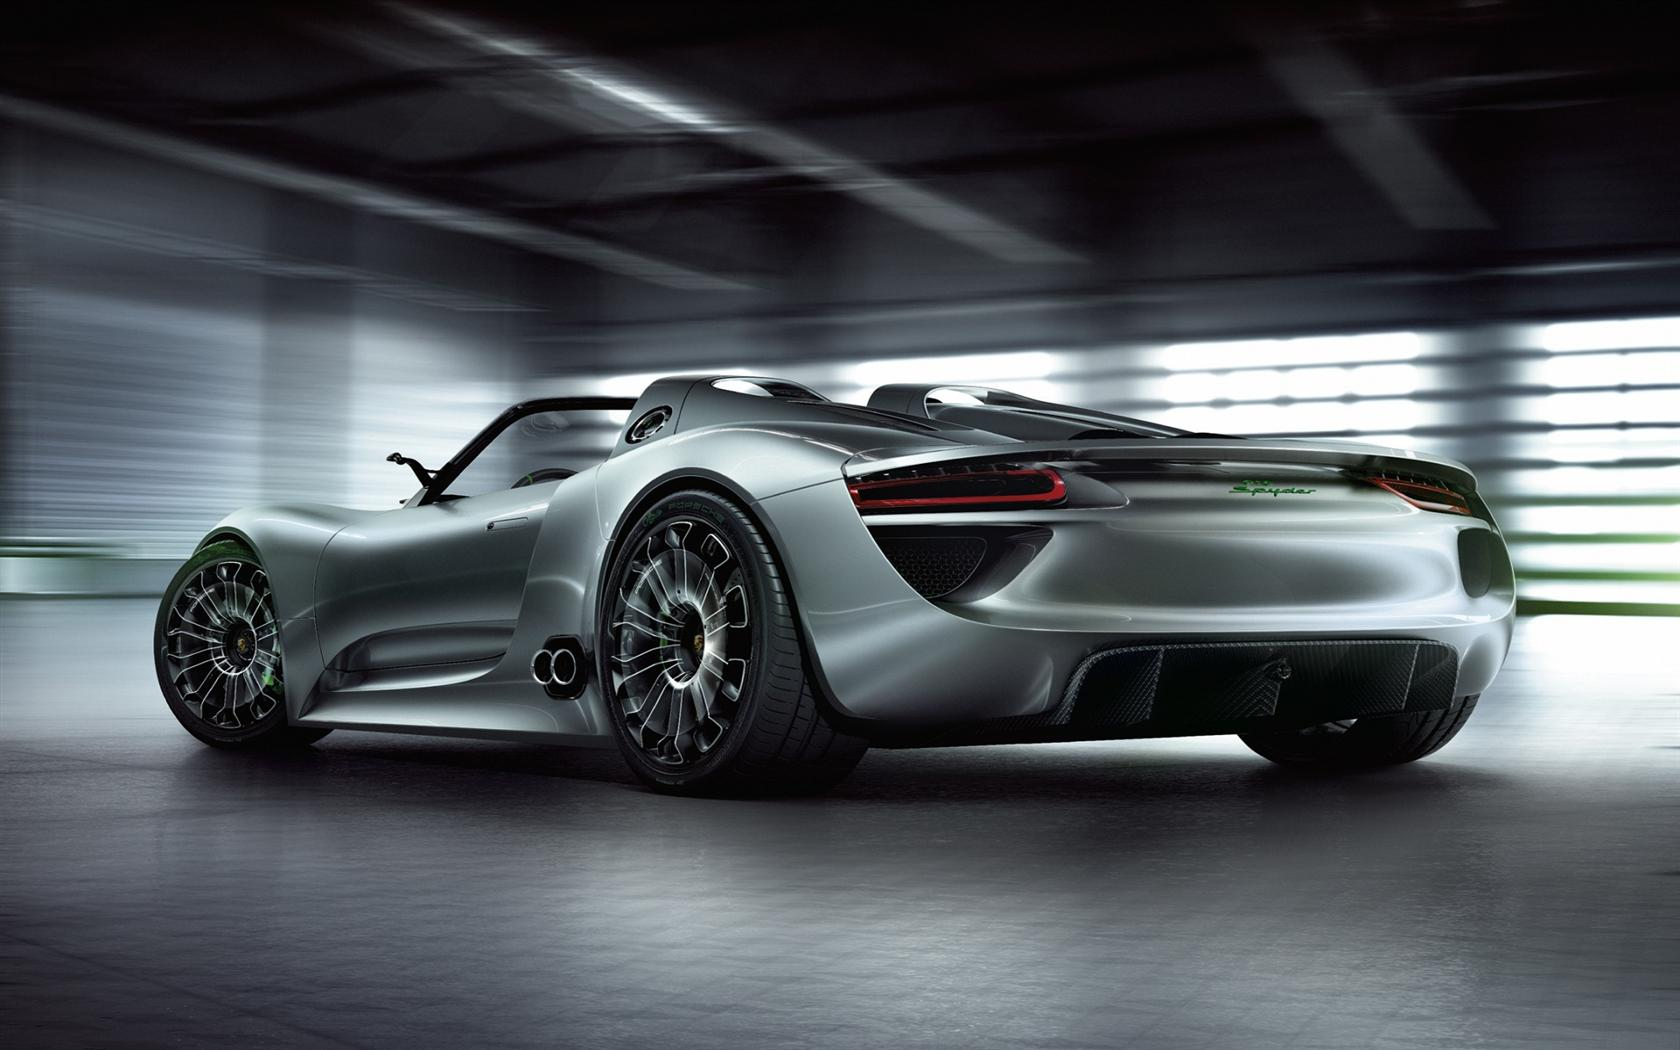 2010 porsche 918 spyder concept price porsche 918 spyder price will be set around 630 000. Black Bedroom Furniture Sets. Home Design Ideas